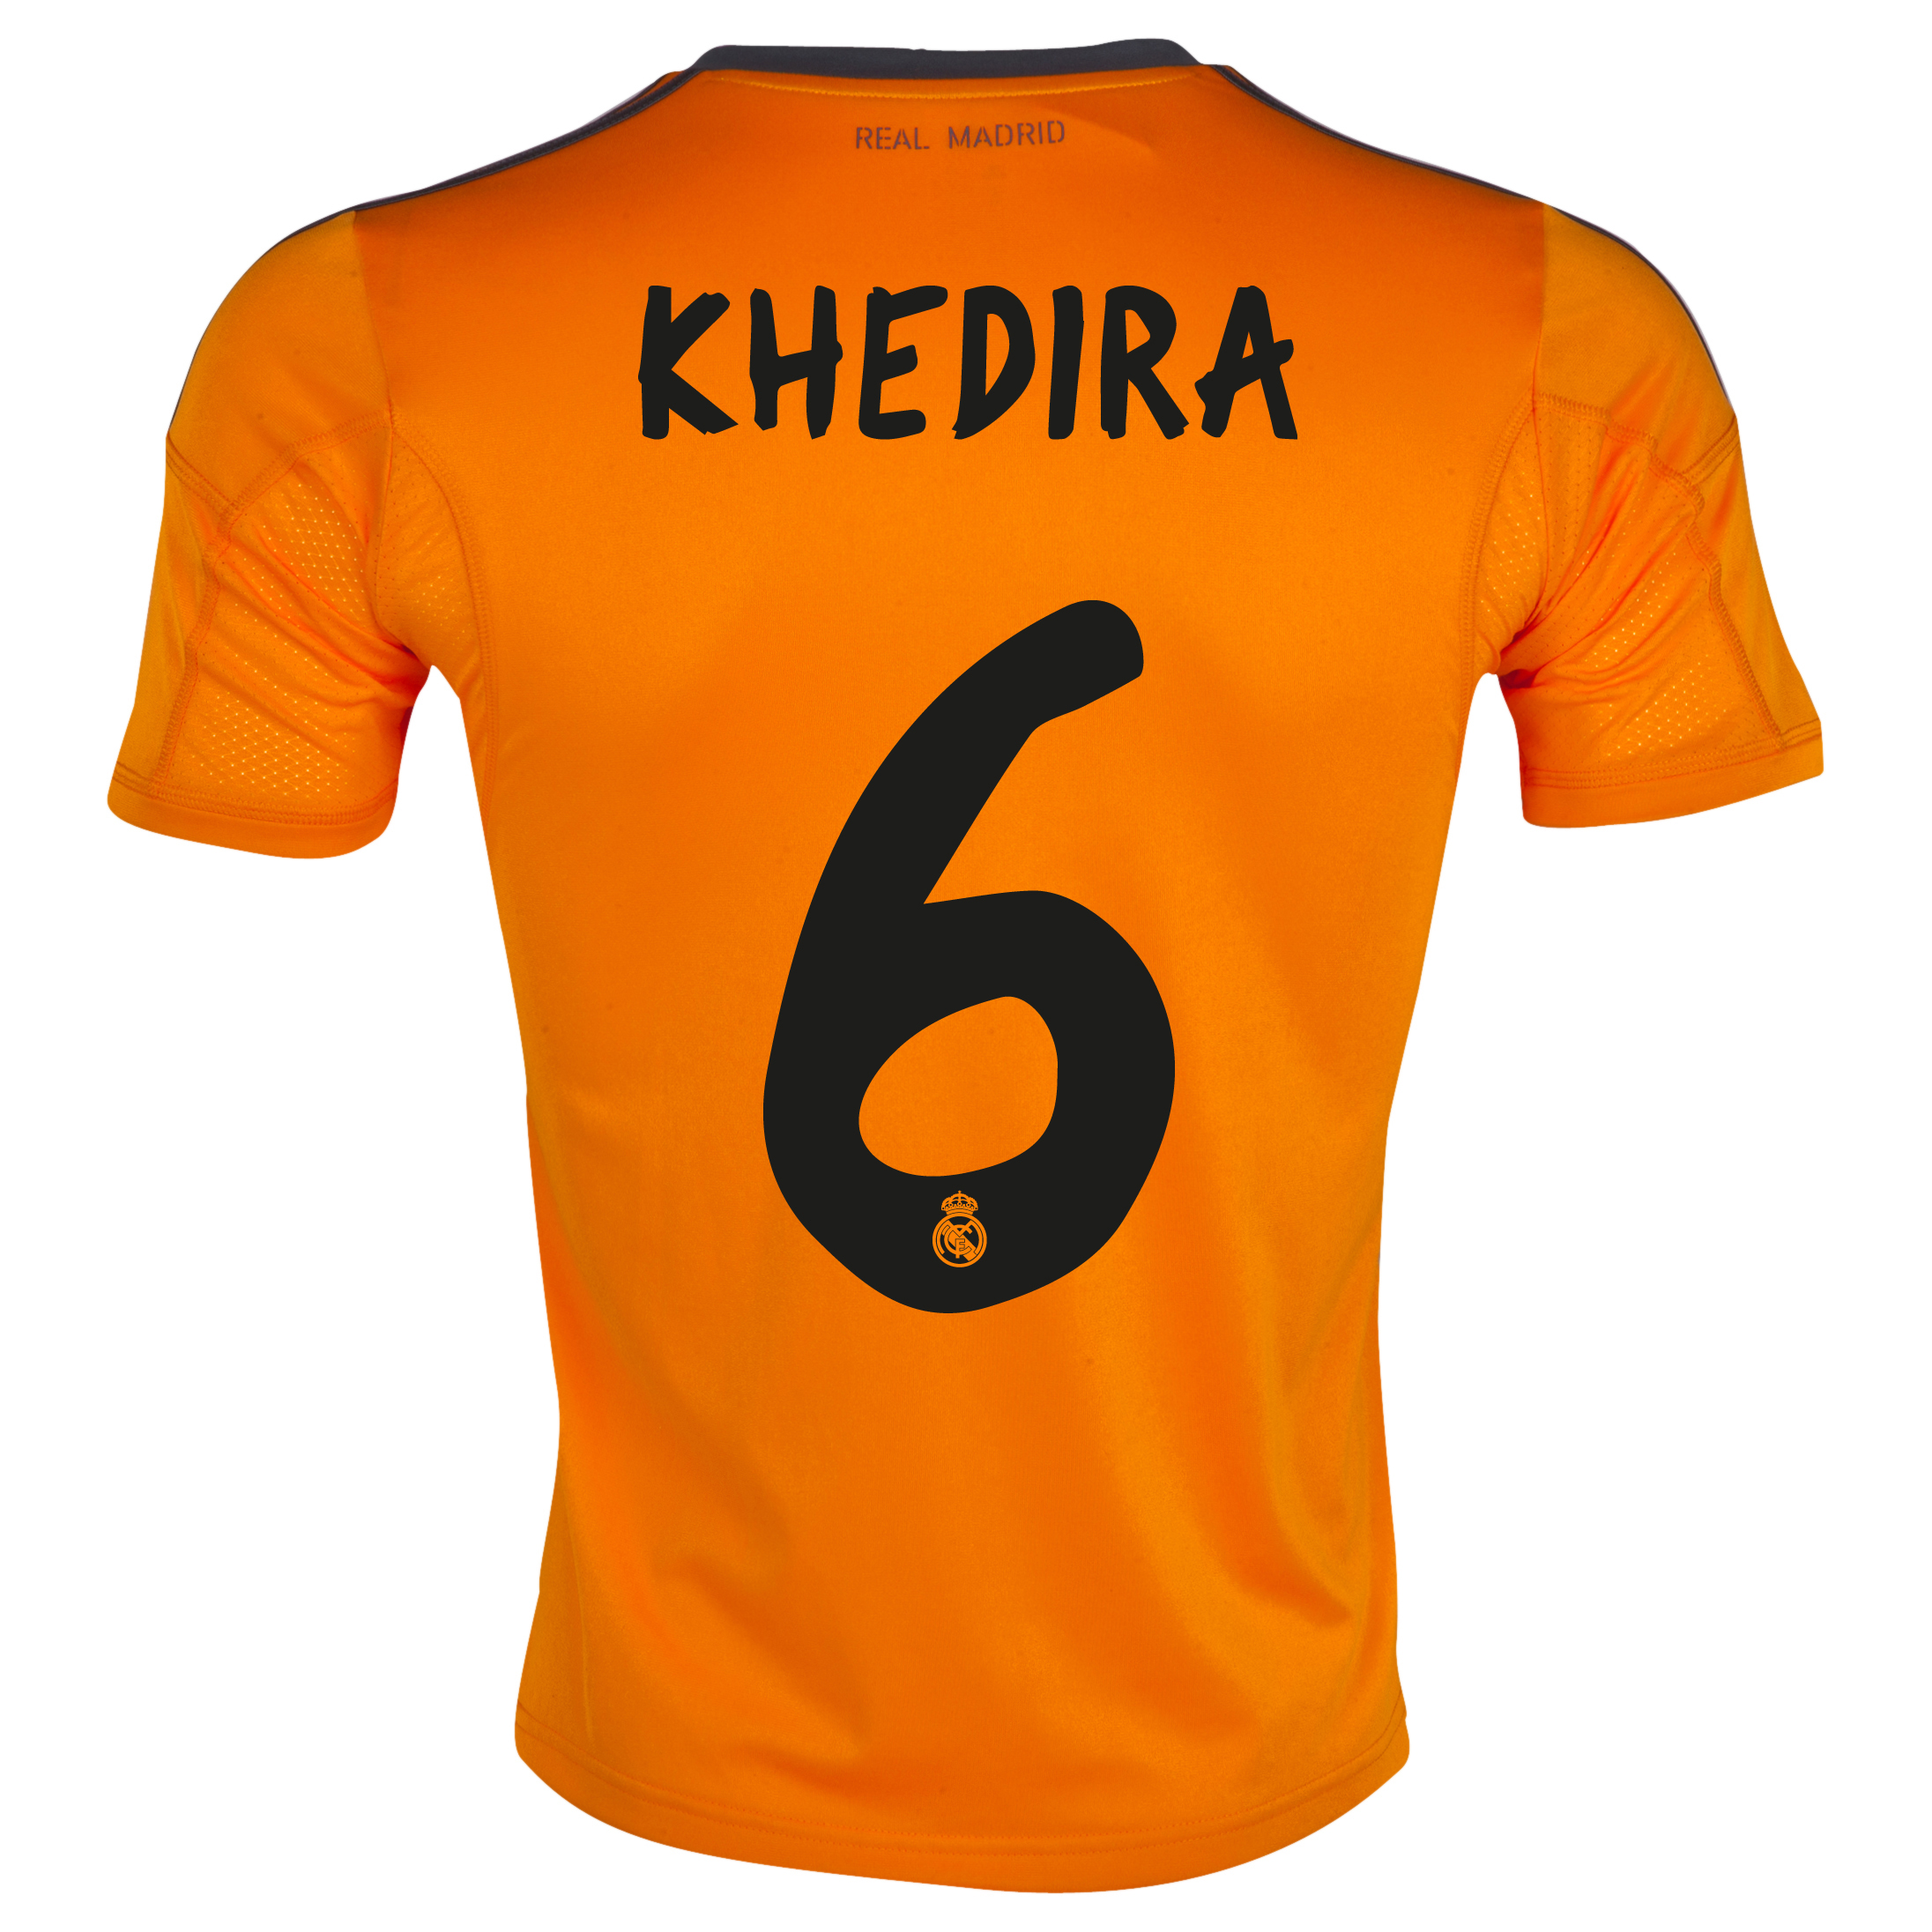 Real Madrid Third Shirt 2013/14 with Khedira 6 printing